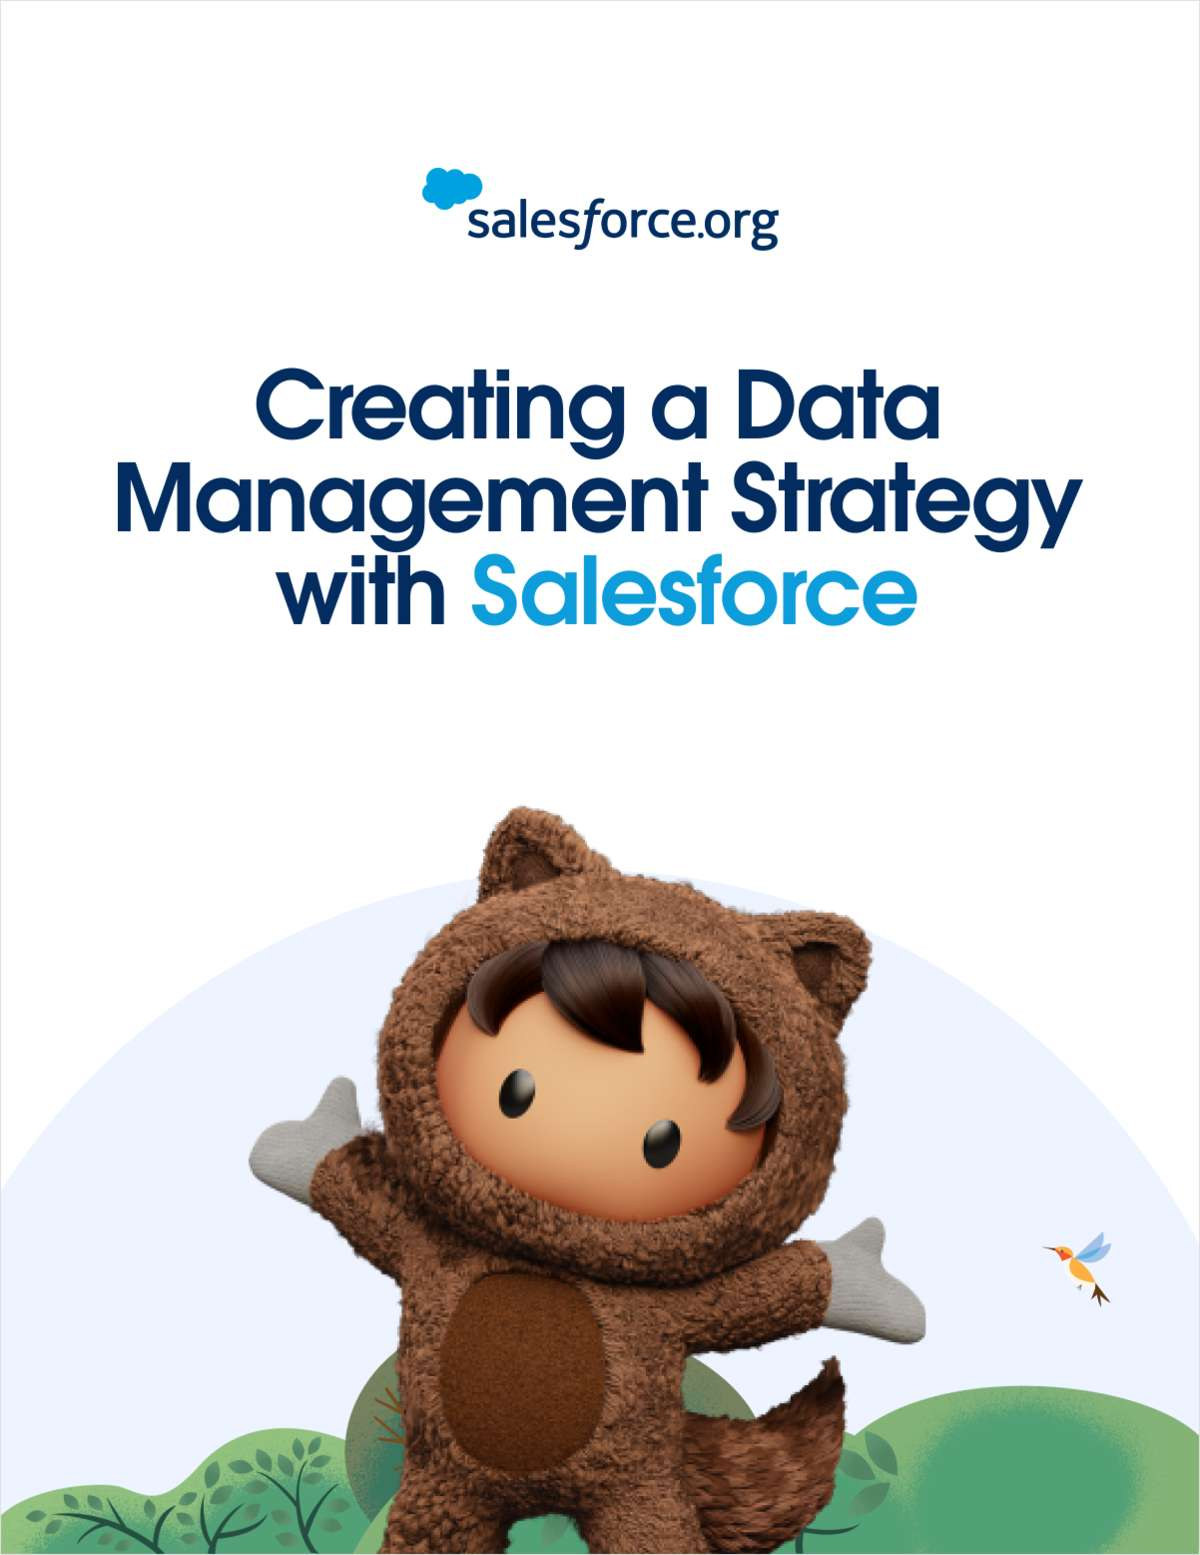 Creating a Data Management Strategy